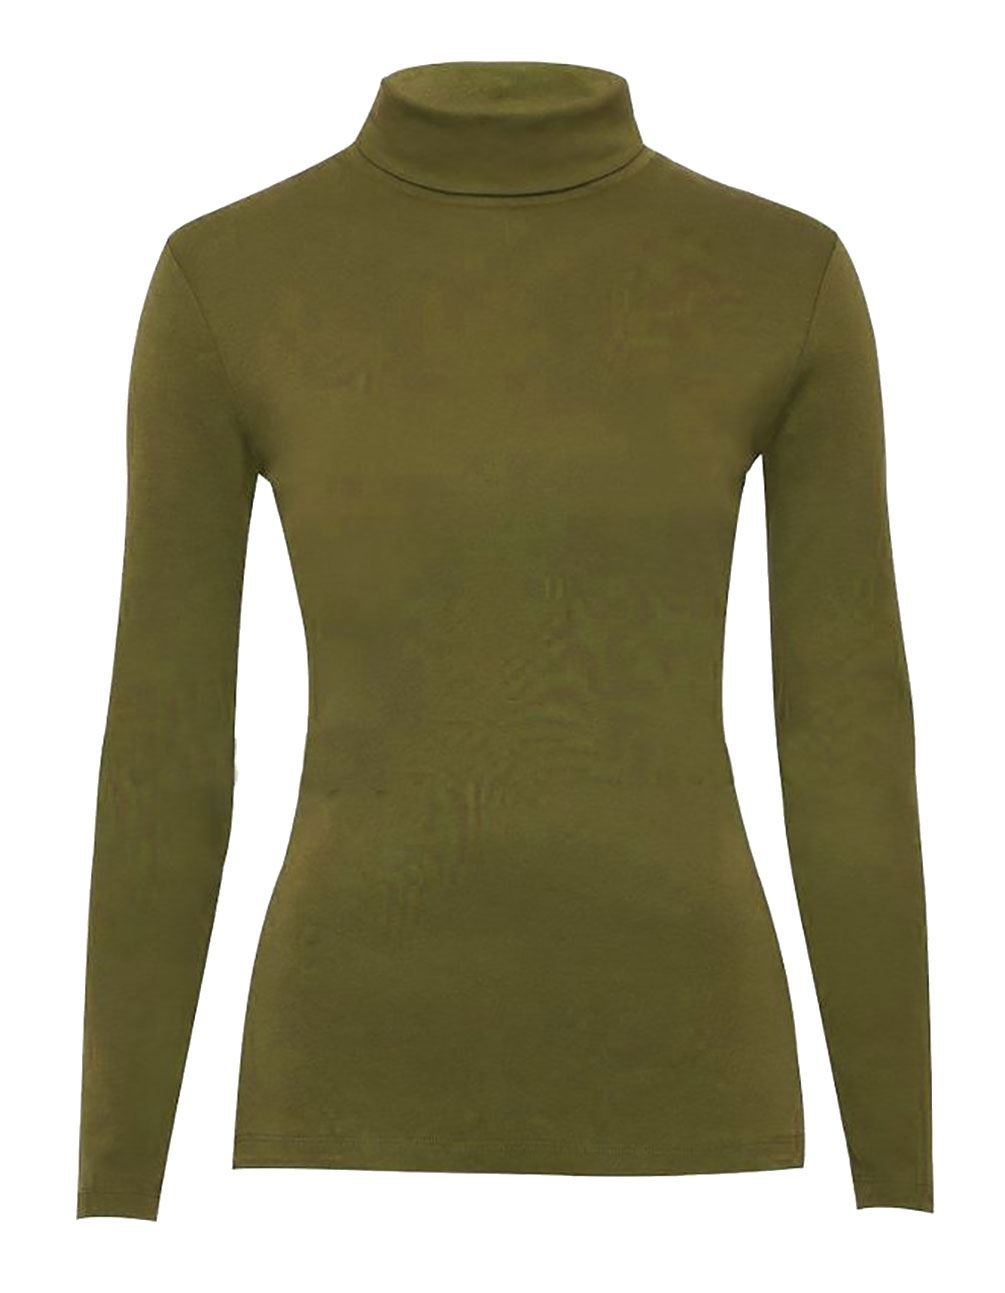 Ladies High Polo Turtle Neck Jumper Womens Plain Casual Novelty Stretch Jumper